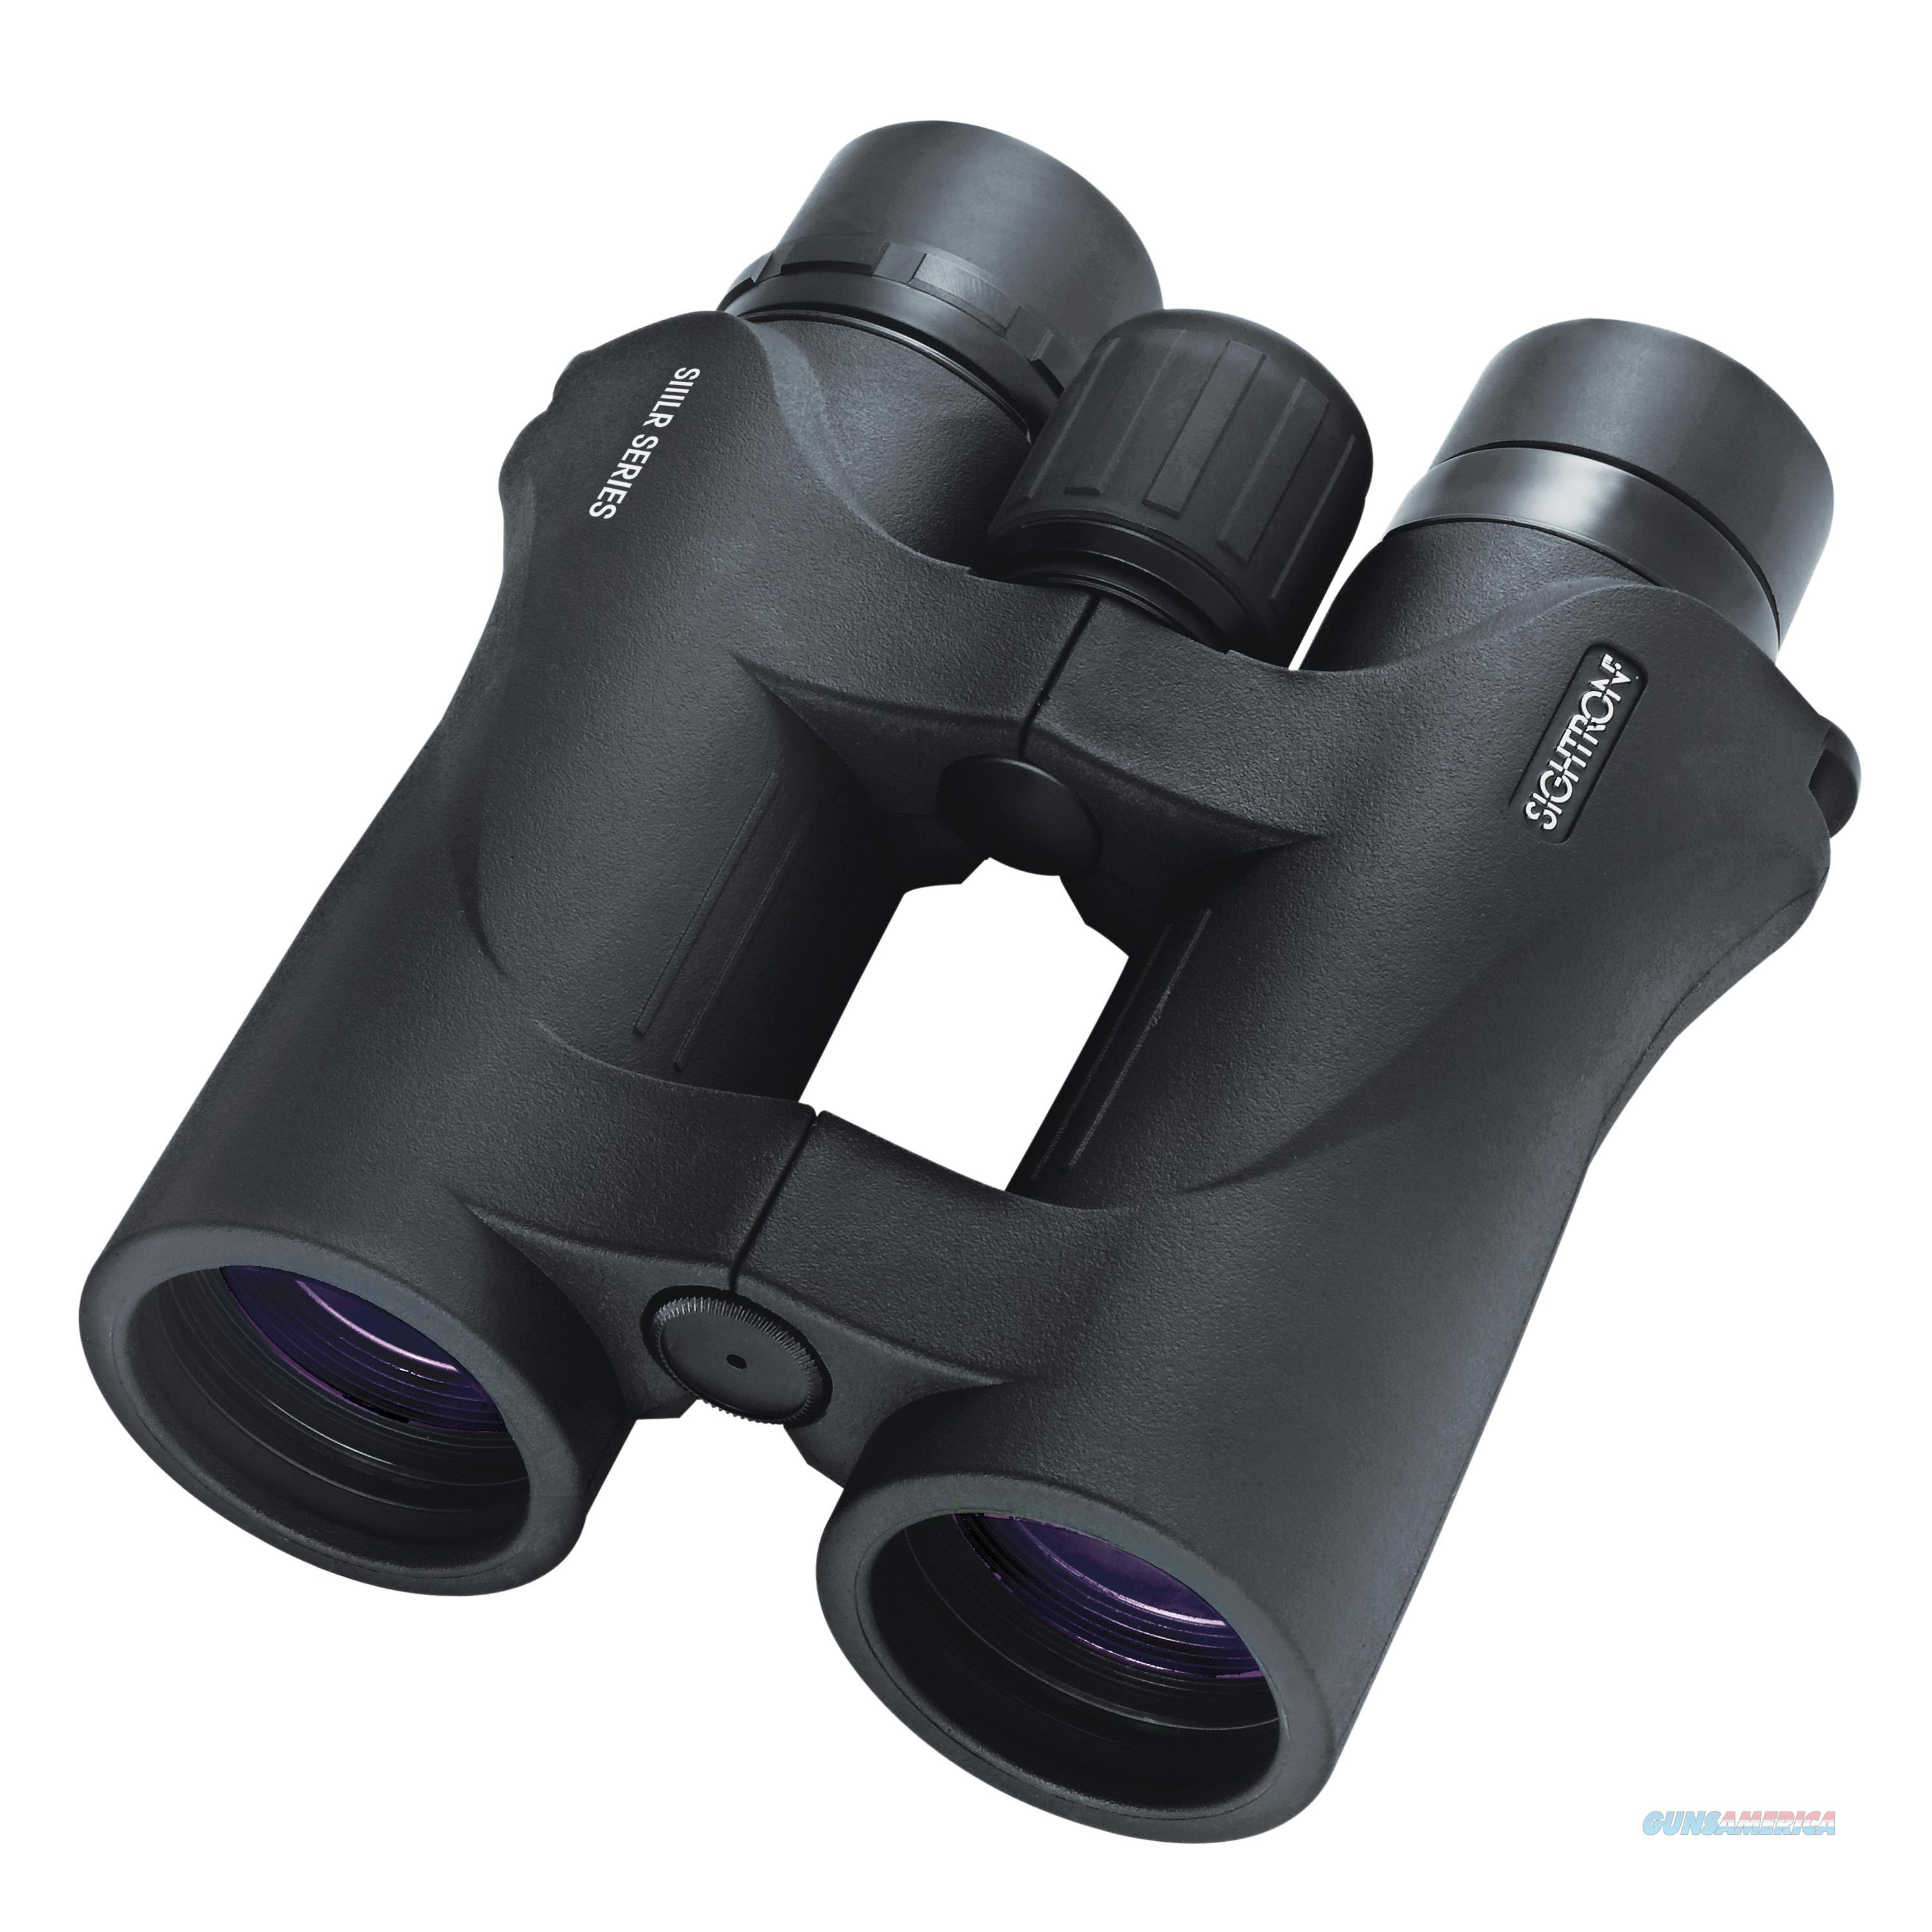 Sightron, Inc. Siii Series Bino 8X42mm 25140  Non-Guns > Scopes/Mounts/Rings & Optics > Non-Scope Optics > Binoculars